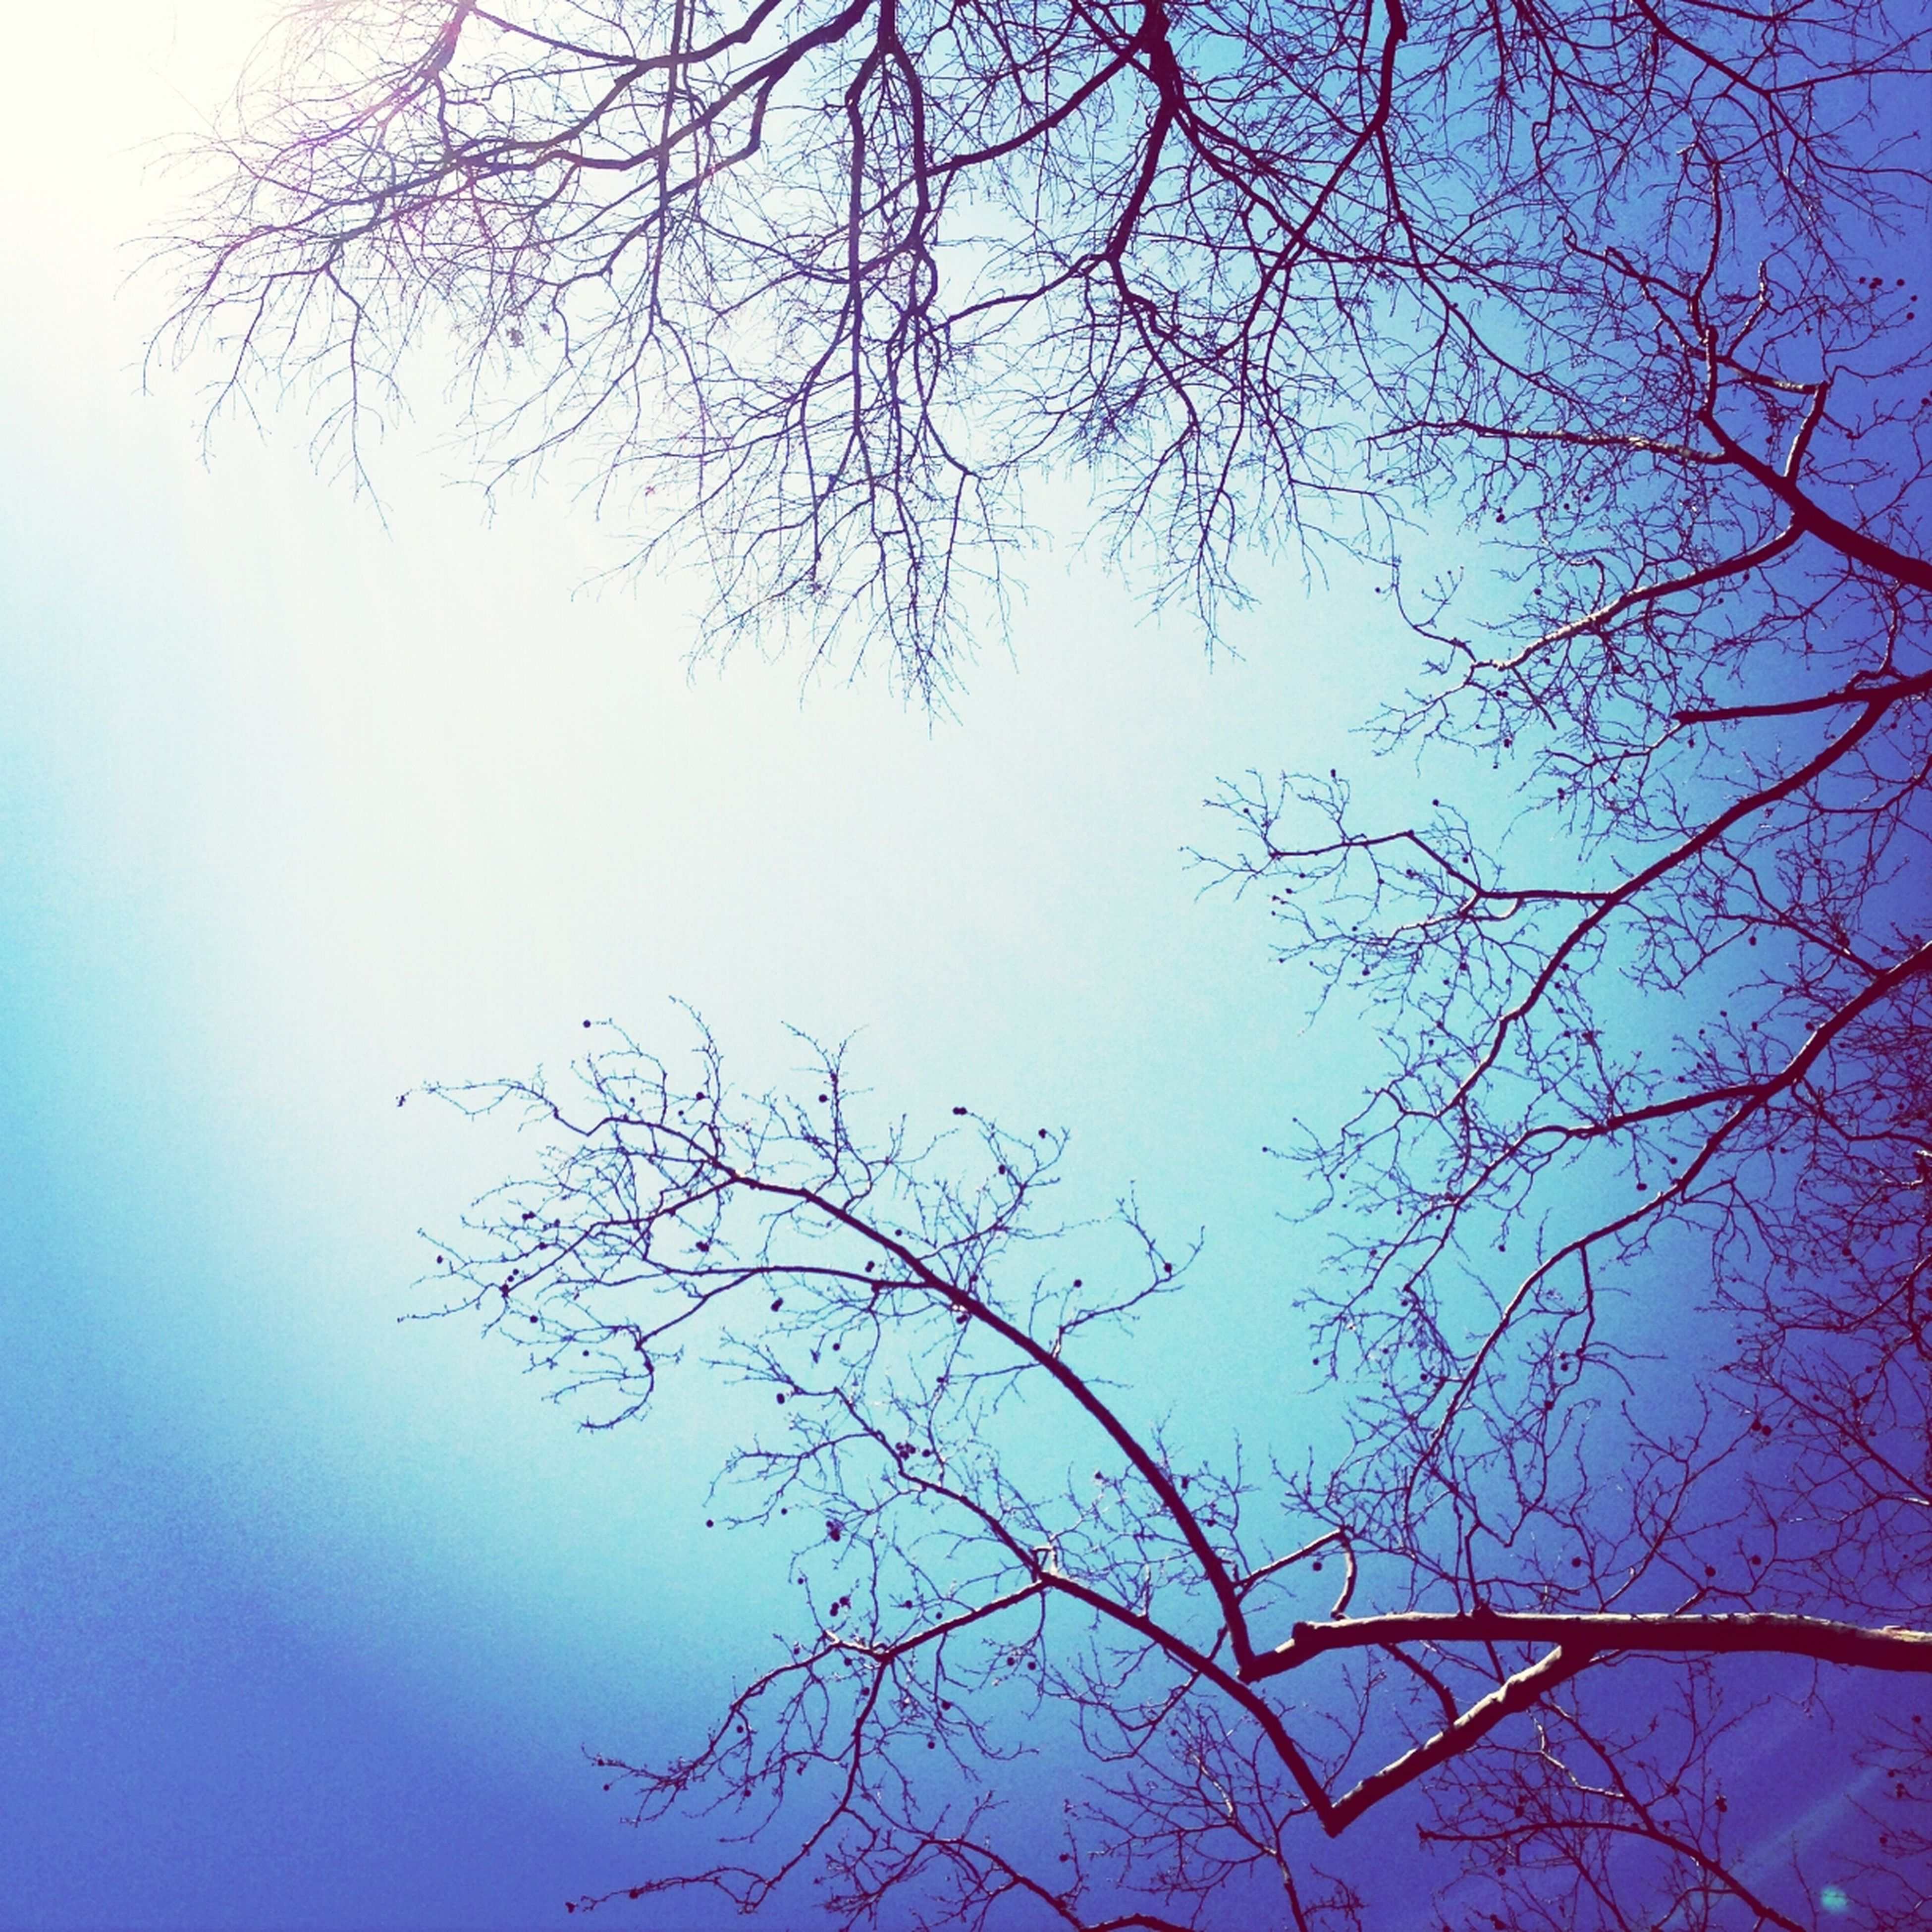 branch, tree, low angle view, bare tree, beauty in nature, sky, nature, tranquility, blue, growth, scenics, clear sky, outdoors, tranquil scene, no people, day, high section, silhouette, backgrounds, twig